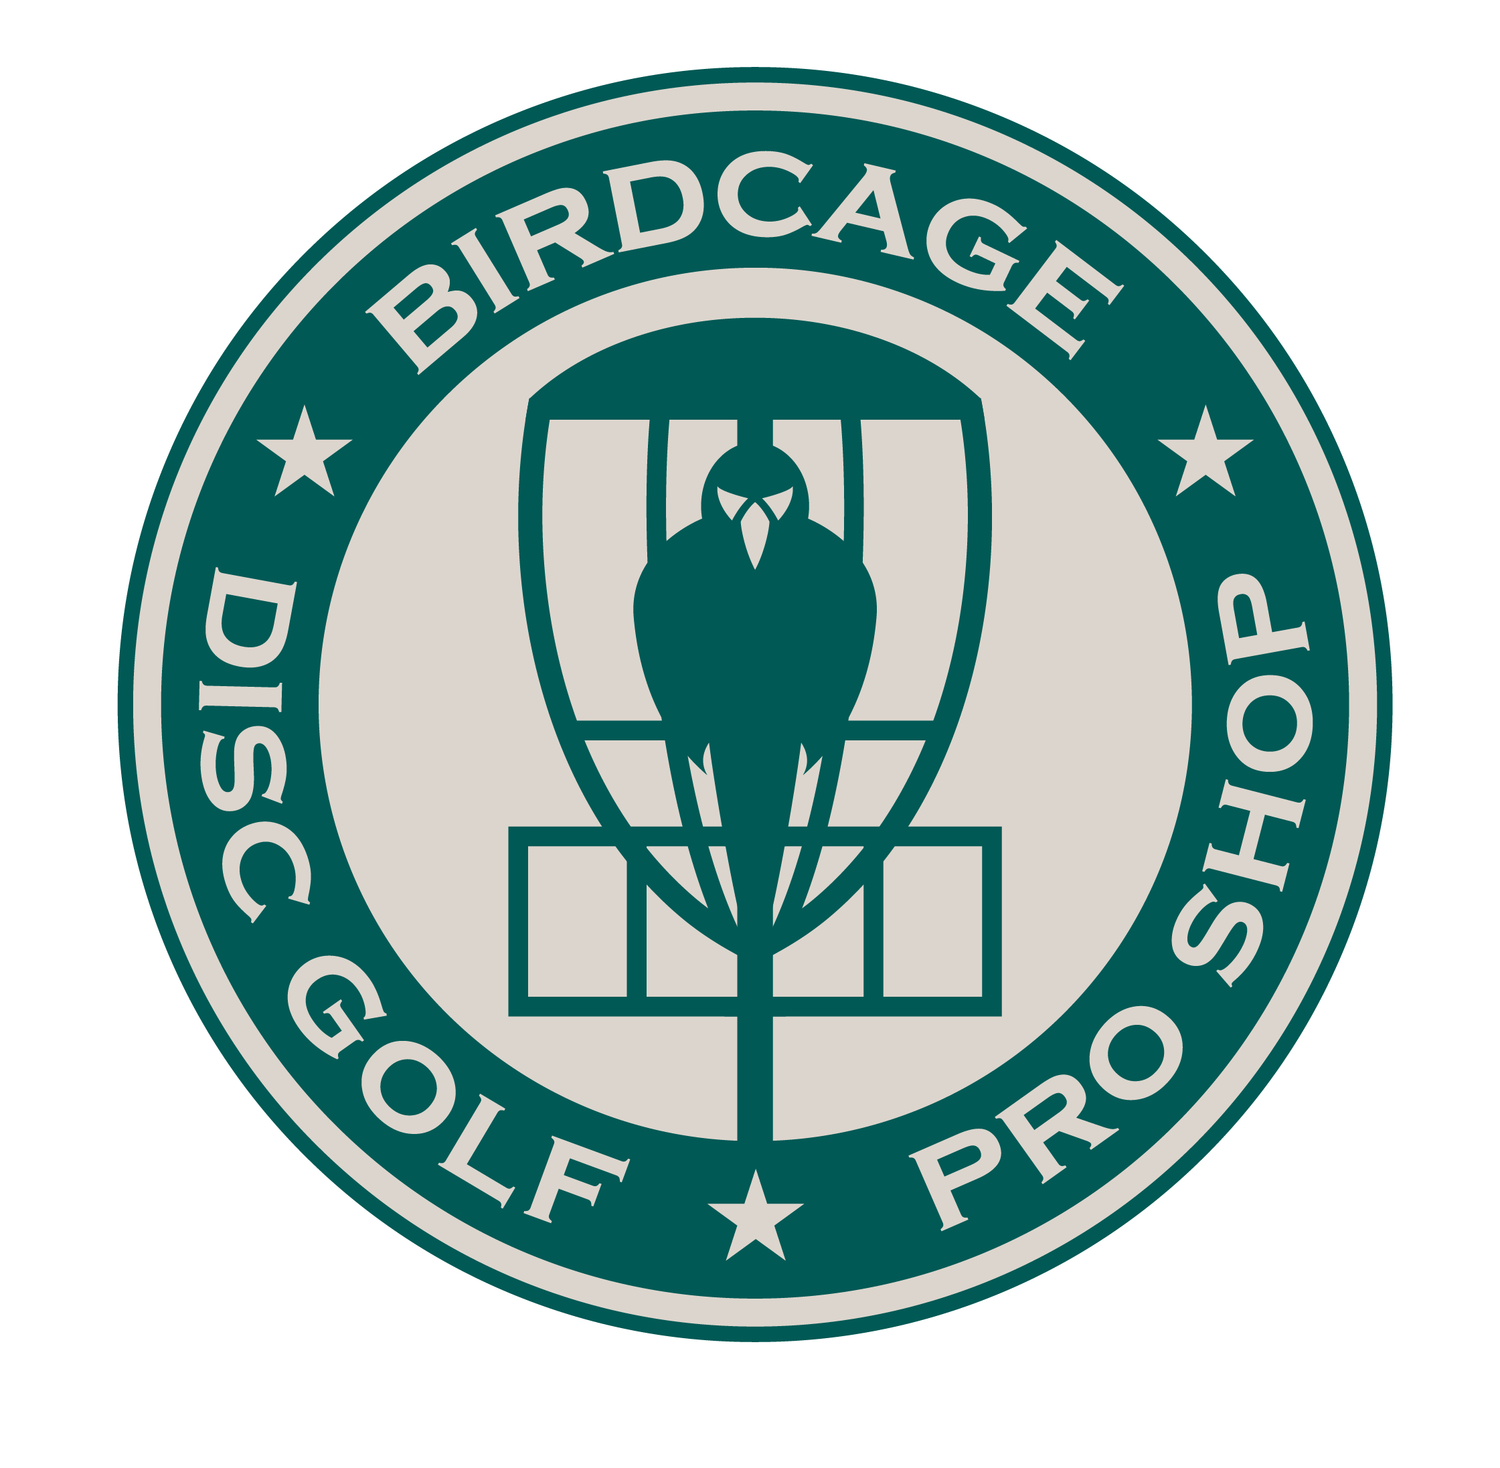 Birdcage Disc Golf